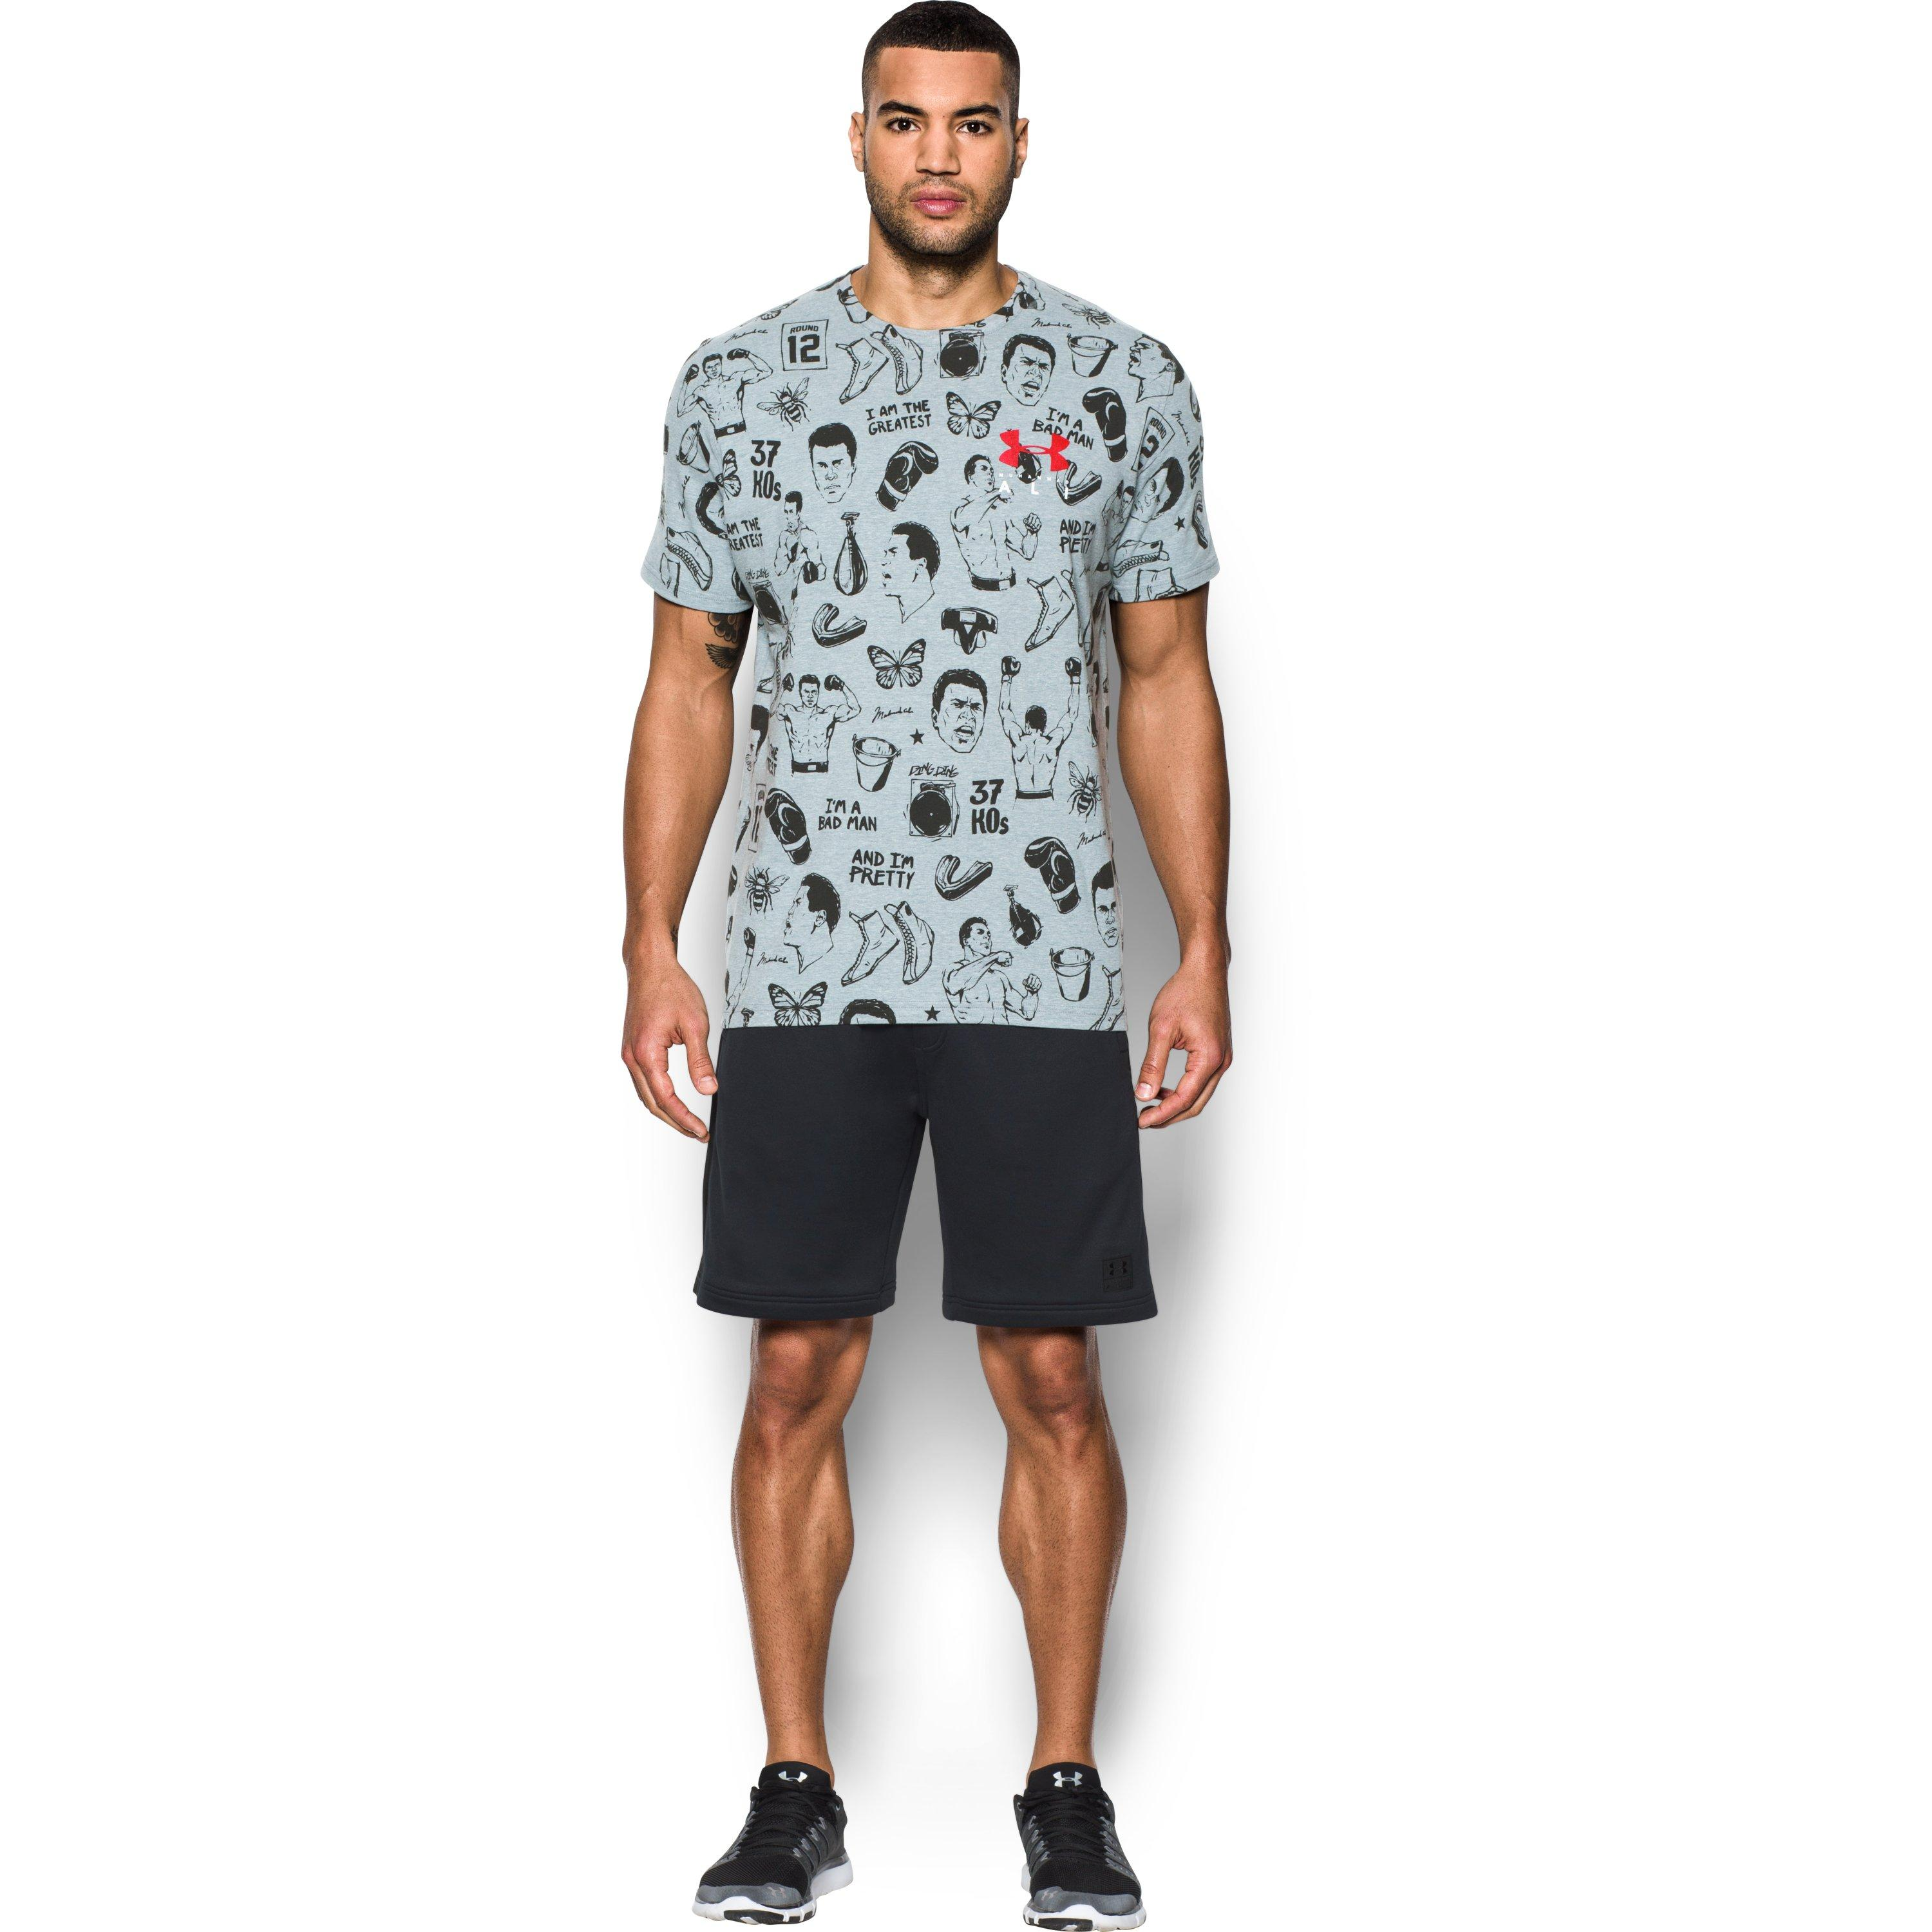 Lyst - Under Armour Men s Ua X Ali Aop T-shirt in Gray for Men 29ab196a3baa7